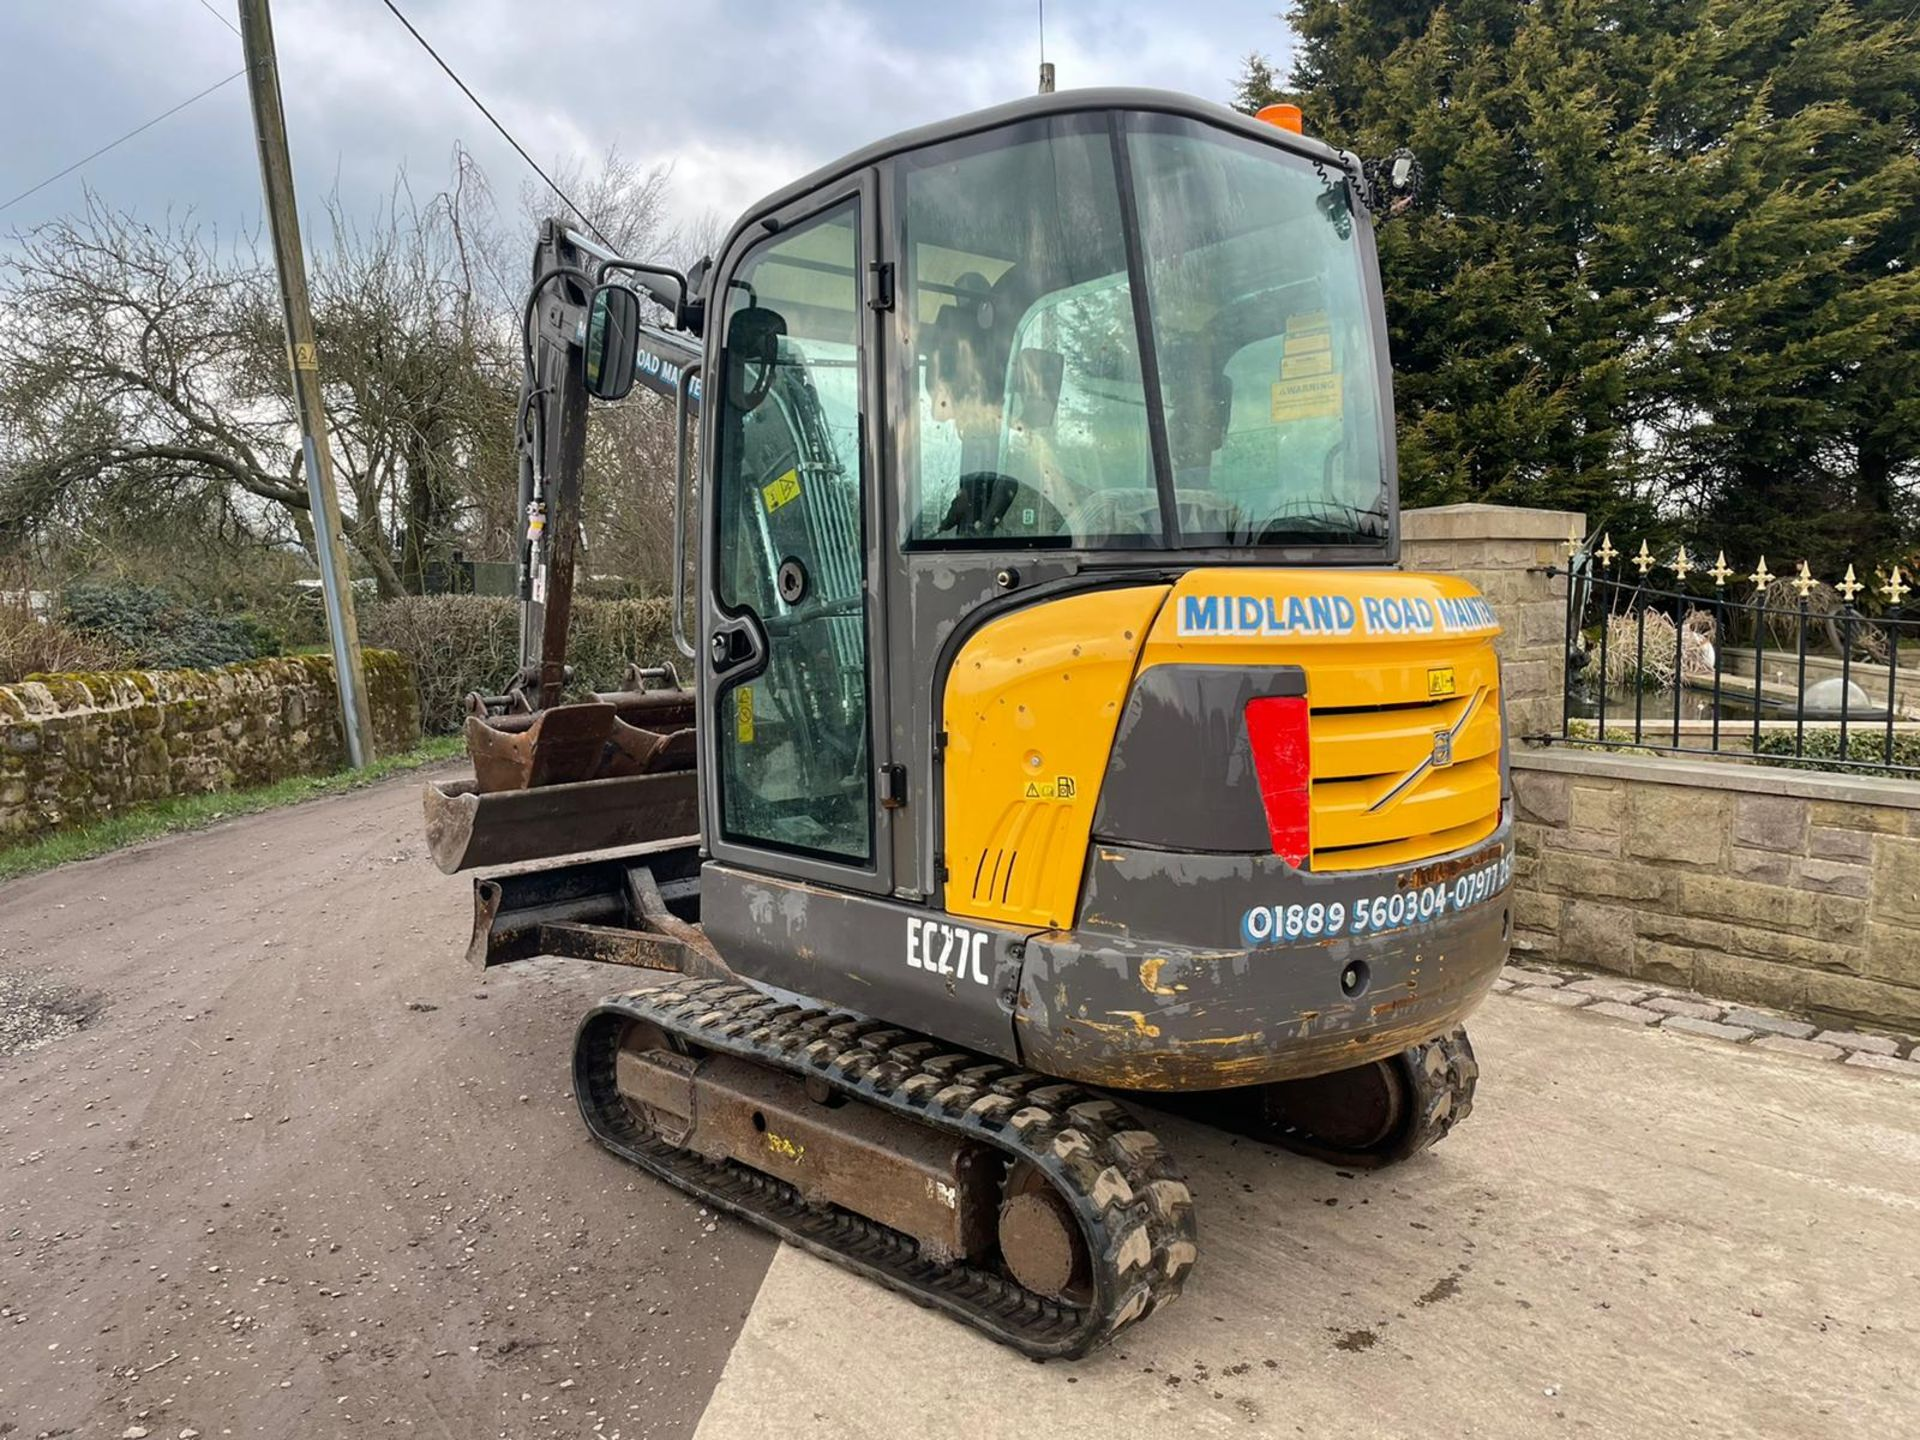 2013 VOLVO EC27C EXCAVATOR RUNS, DRIVES AND DIGS, X3 BUCKETS INCLUDED - Image 3 of 8